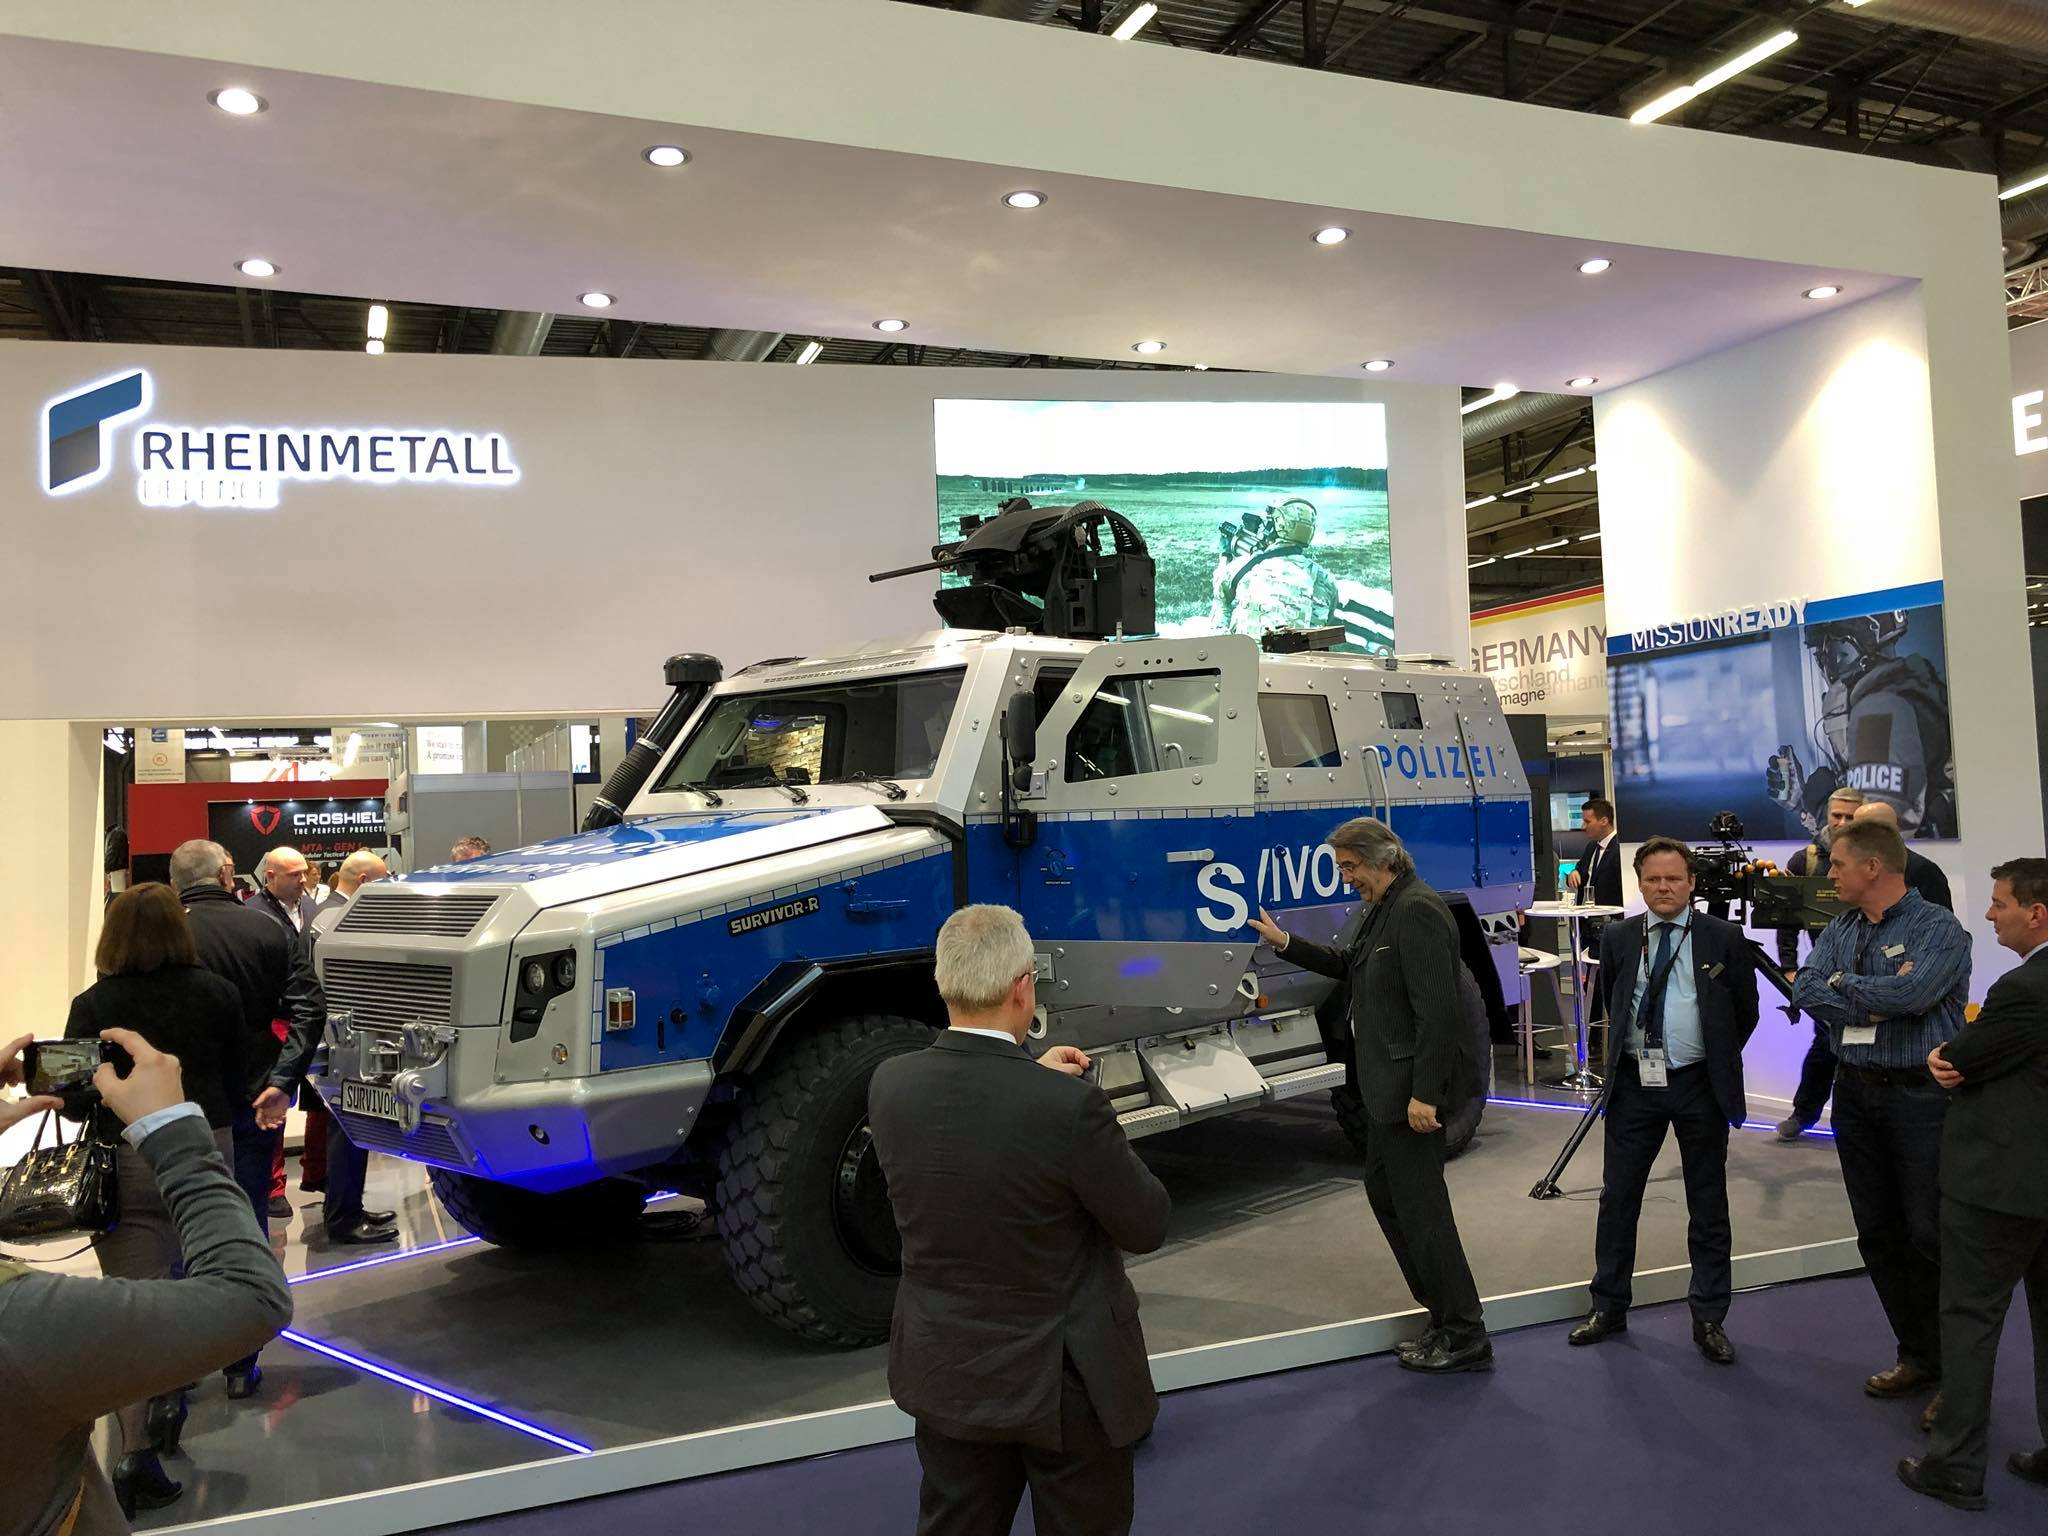 Rheinmetall unveils RMMV Survivor R special operations vehicle at Milipol 2017